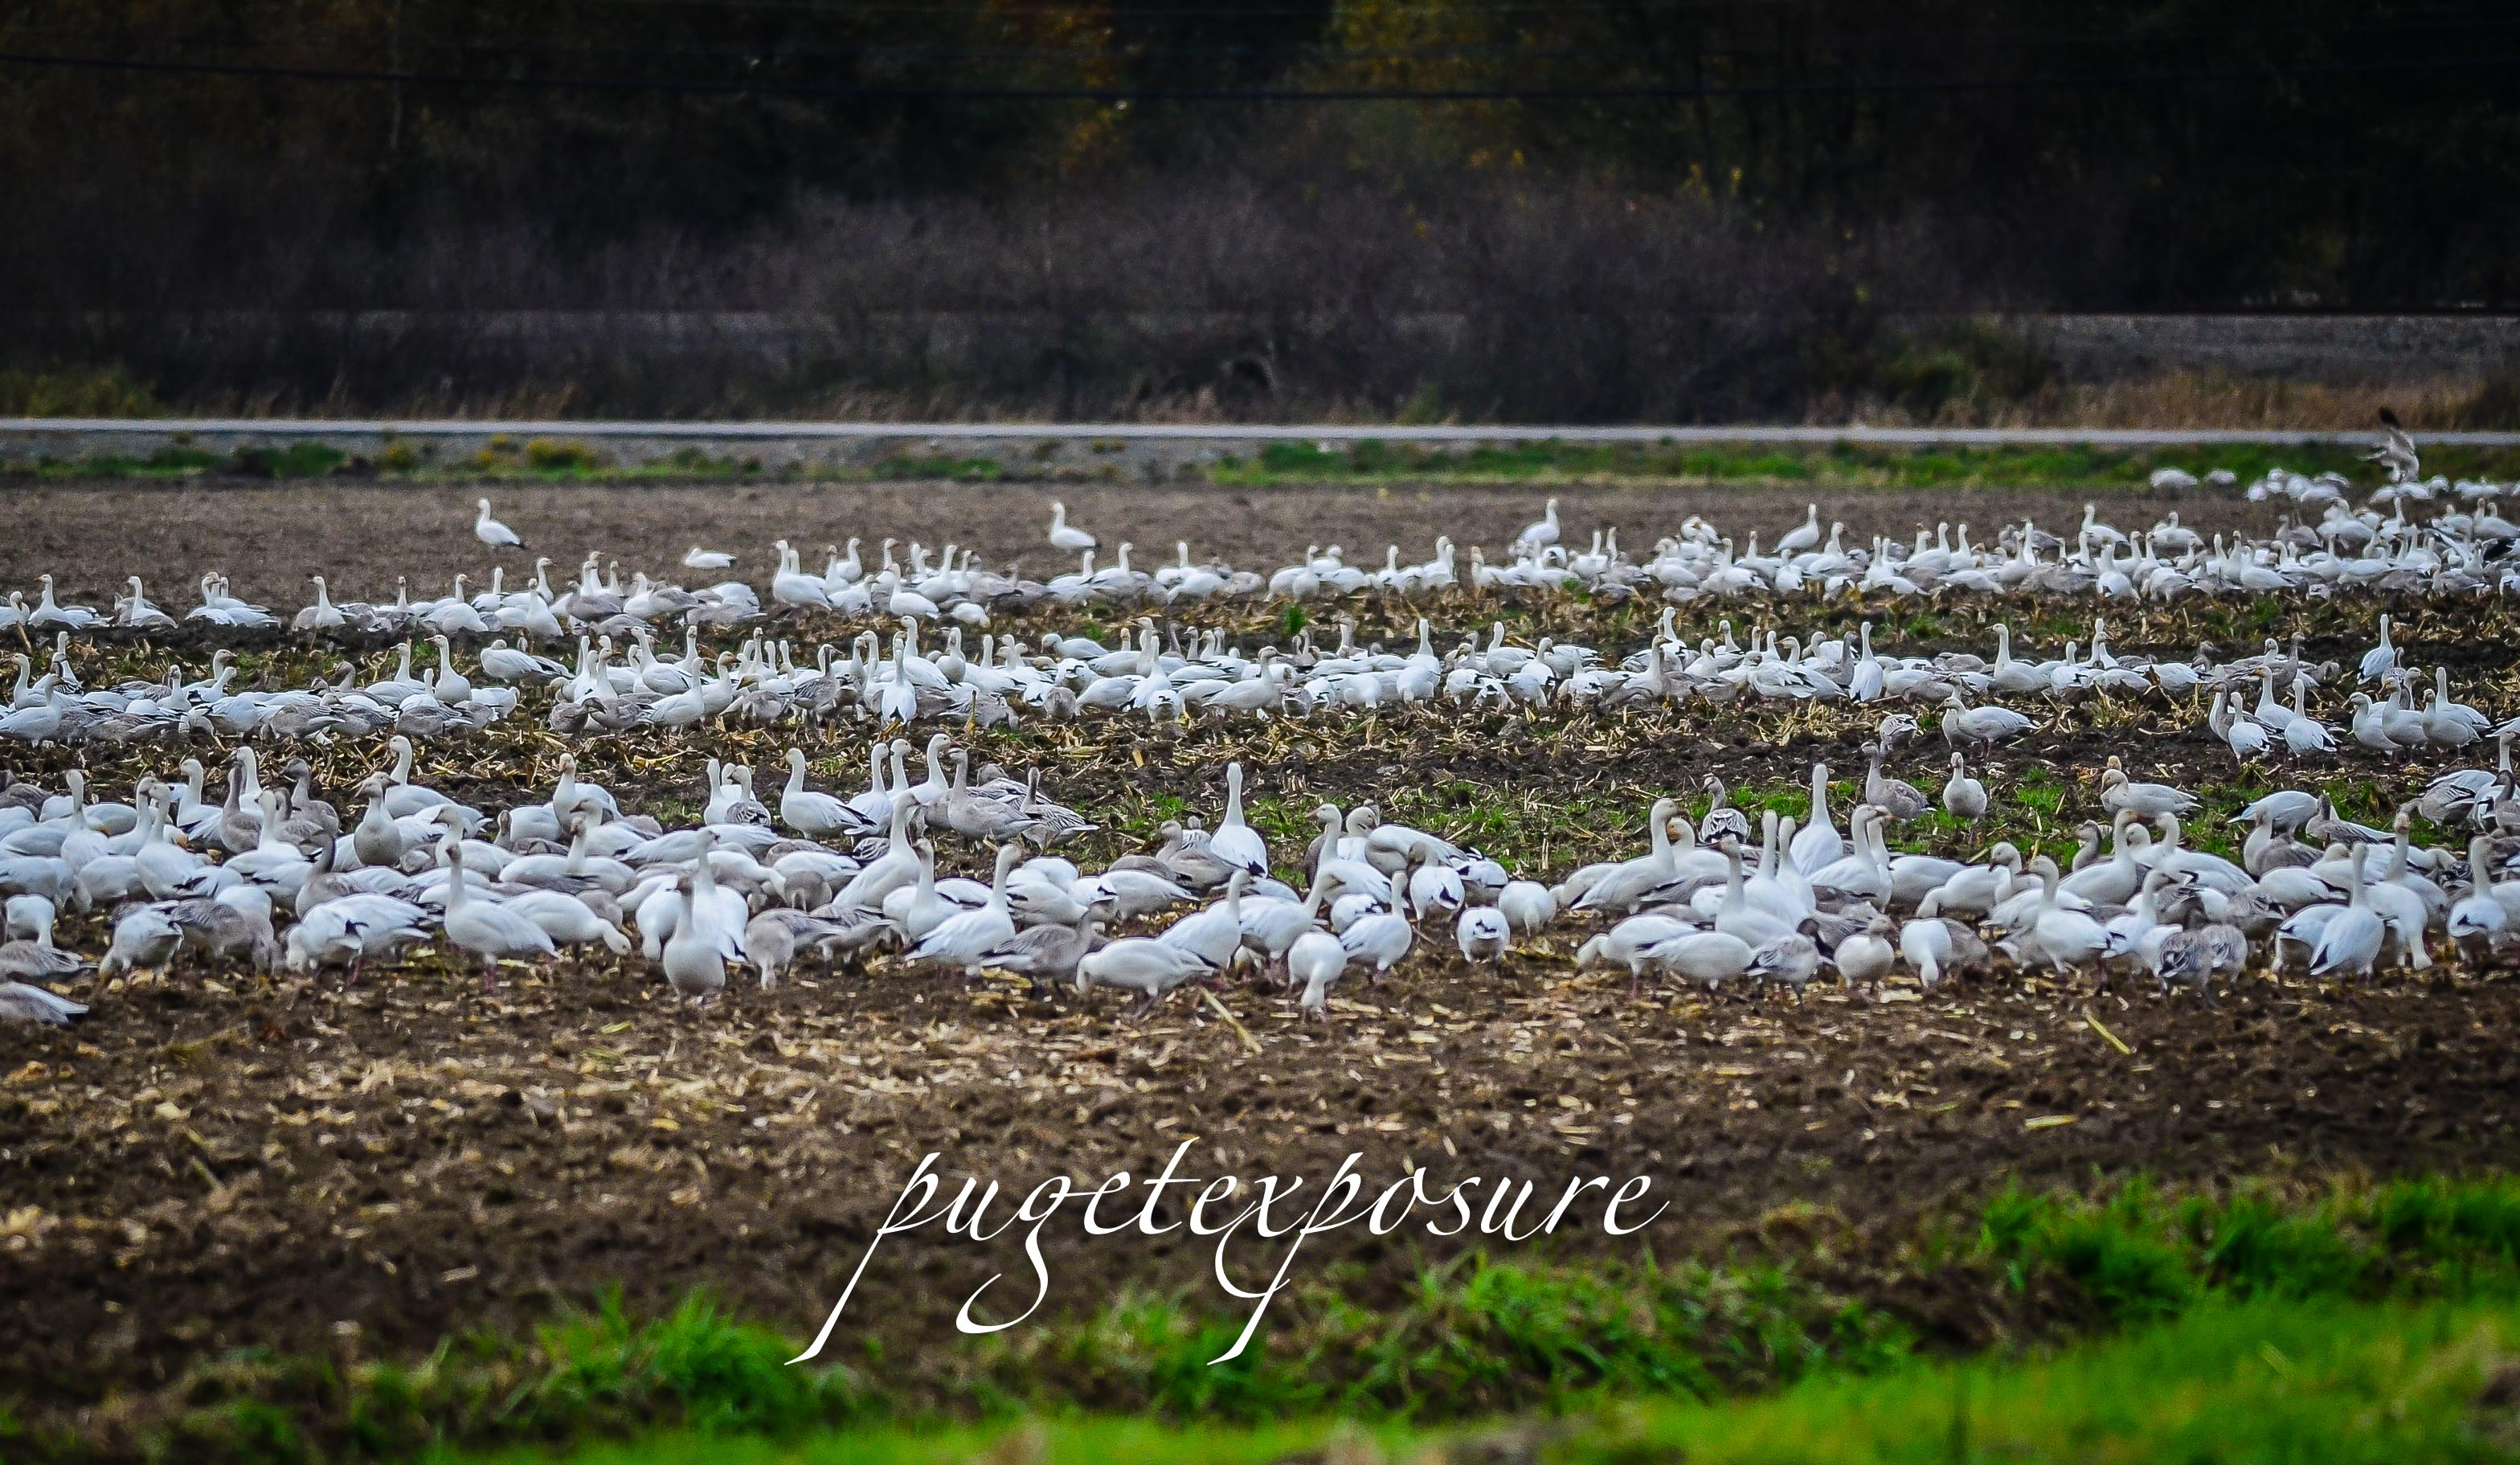 Snow Geese arrive in Mount Vernon, WA October 2013